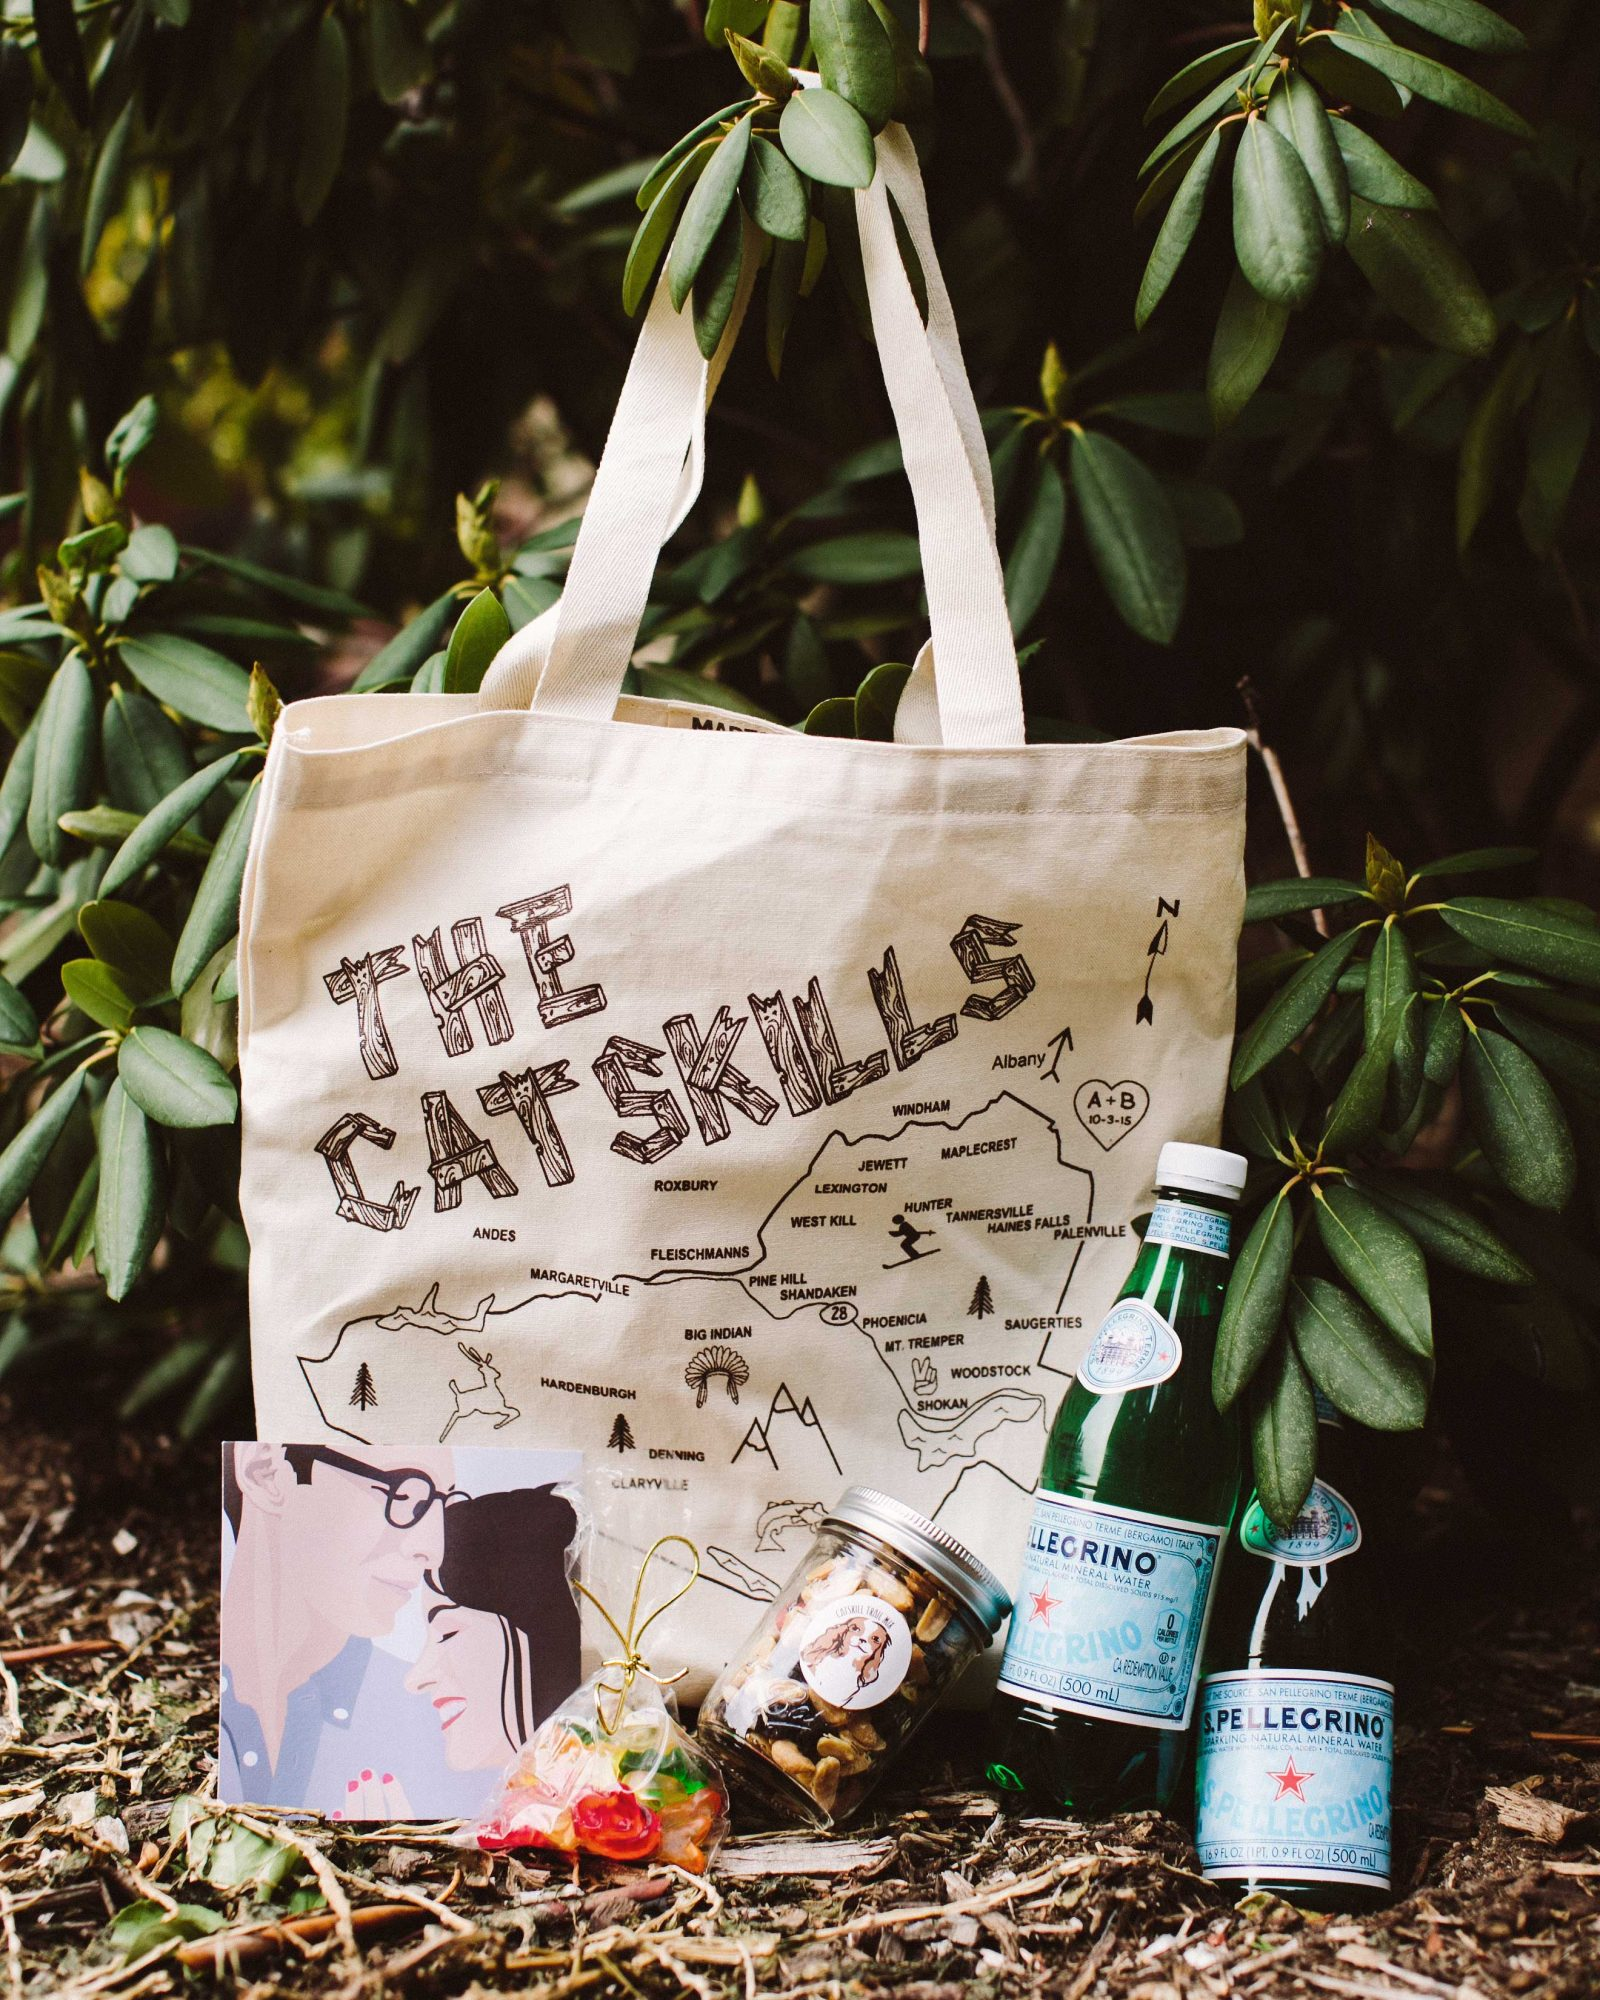 Guests were given custom Catskill totes from Maptote, filled with water, trail mix, gummies, and hangover aids. Included in the bag was a card created by Barrett's graphic designer sister inspired by one of the pair's engagement photos, with a schedule of events on the back.